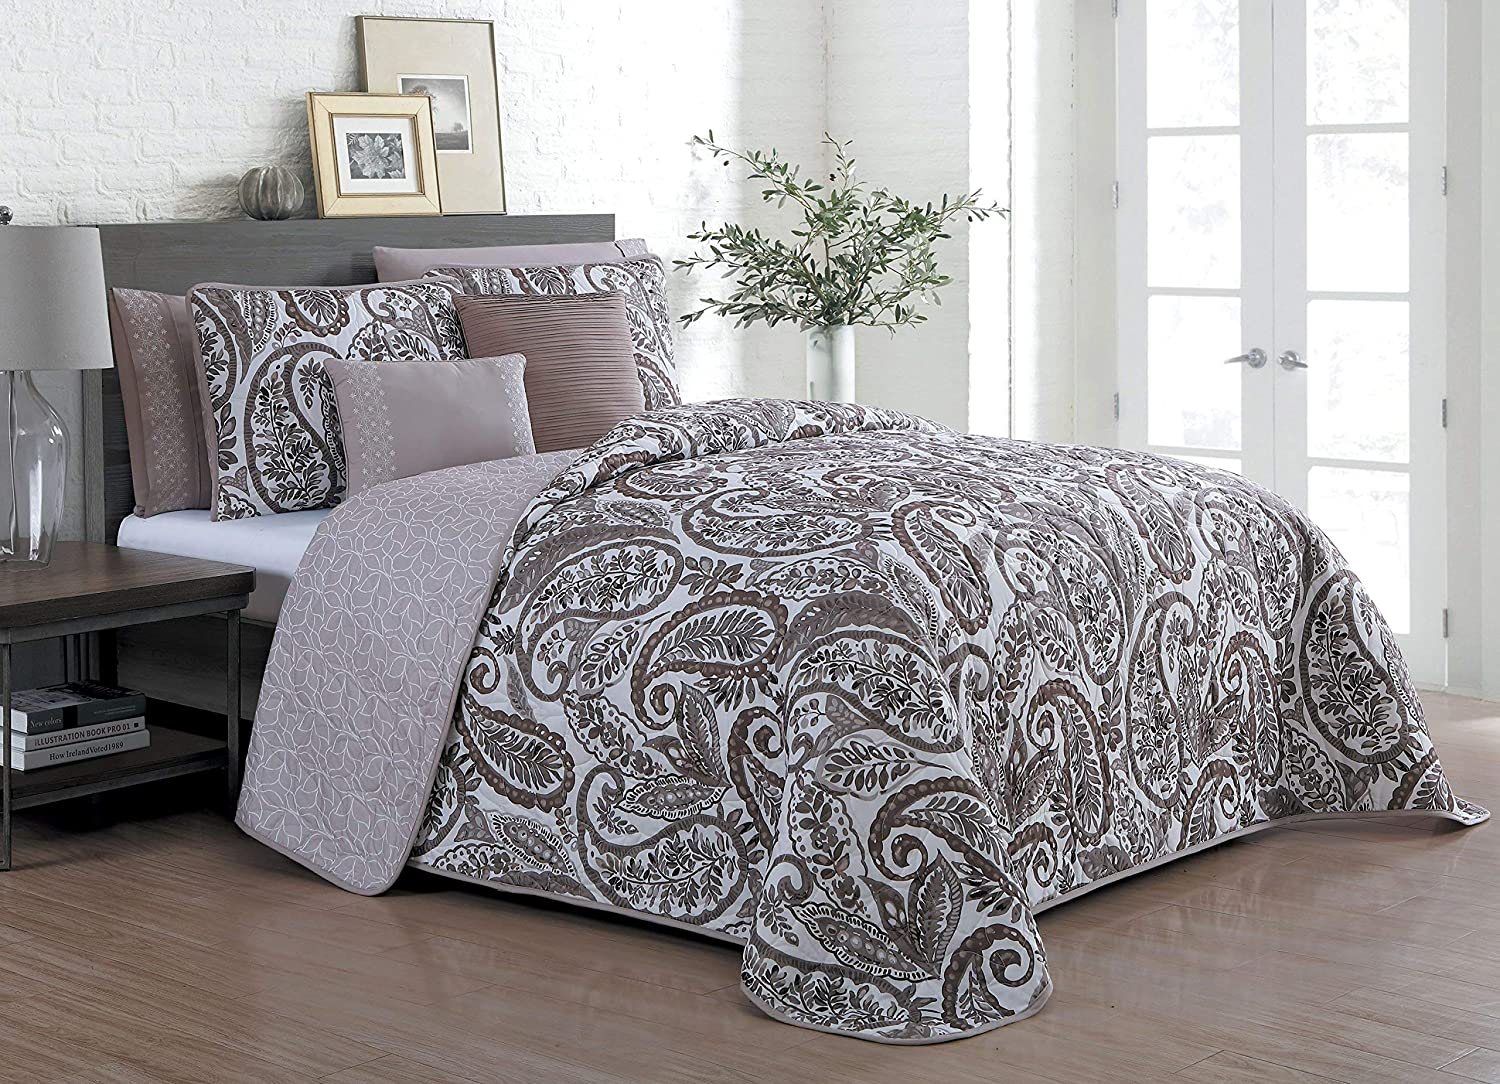 Avondale Manor Seville 7-Piece Comforter Set, King, Taupe